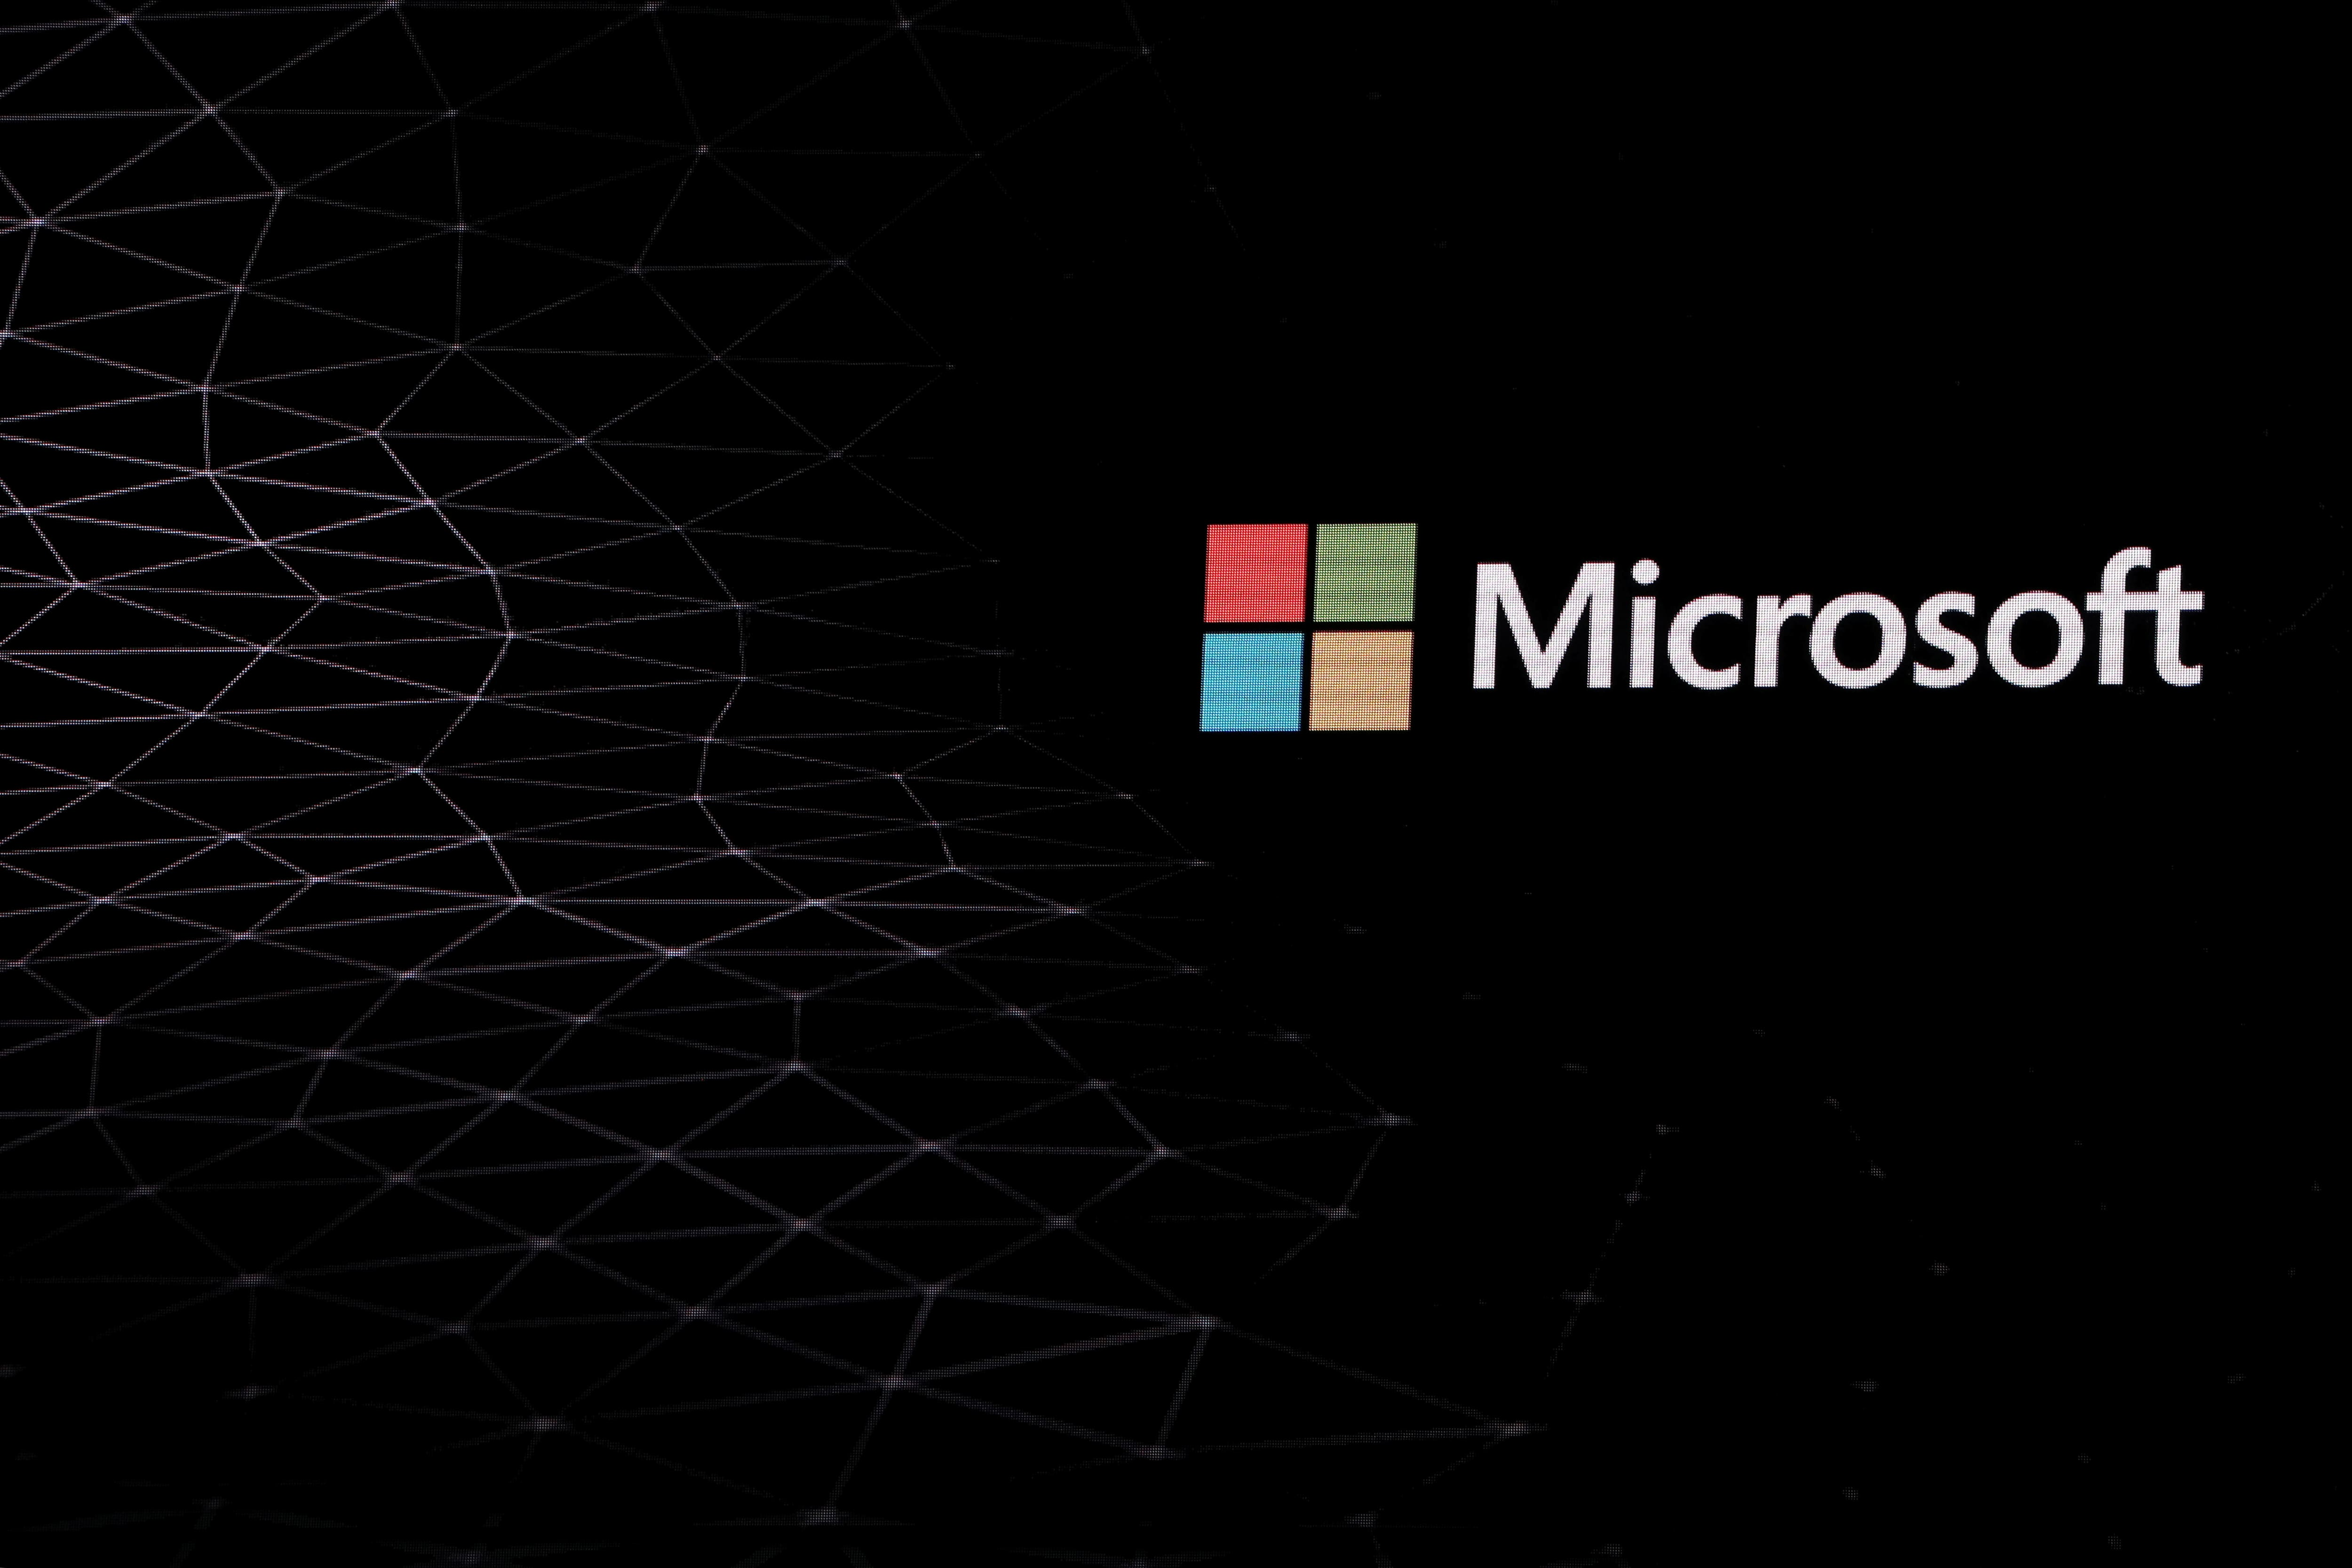 Microsoft Introduces Dark Mode Custom Icons And Daily Wallpapers In Android Launcher Technology News Zee News